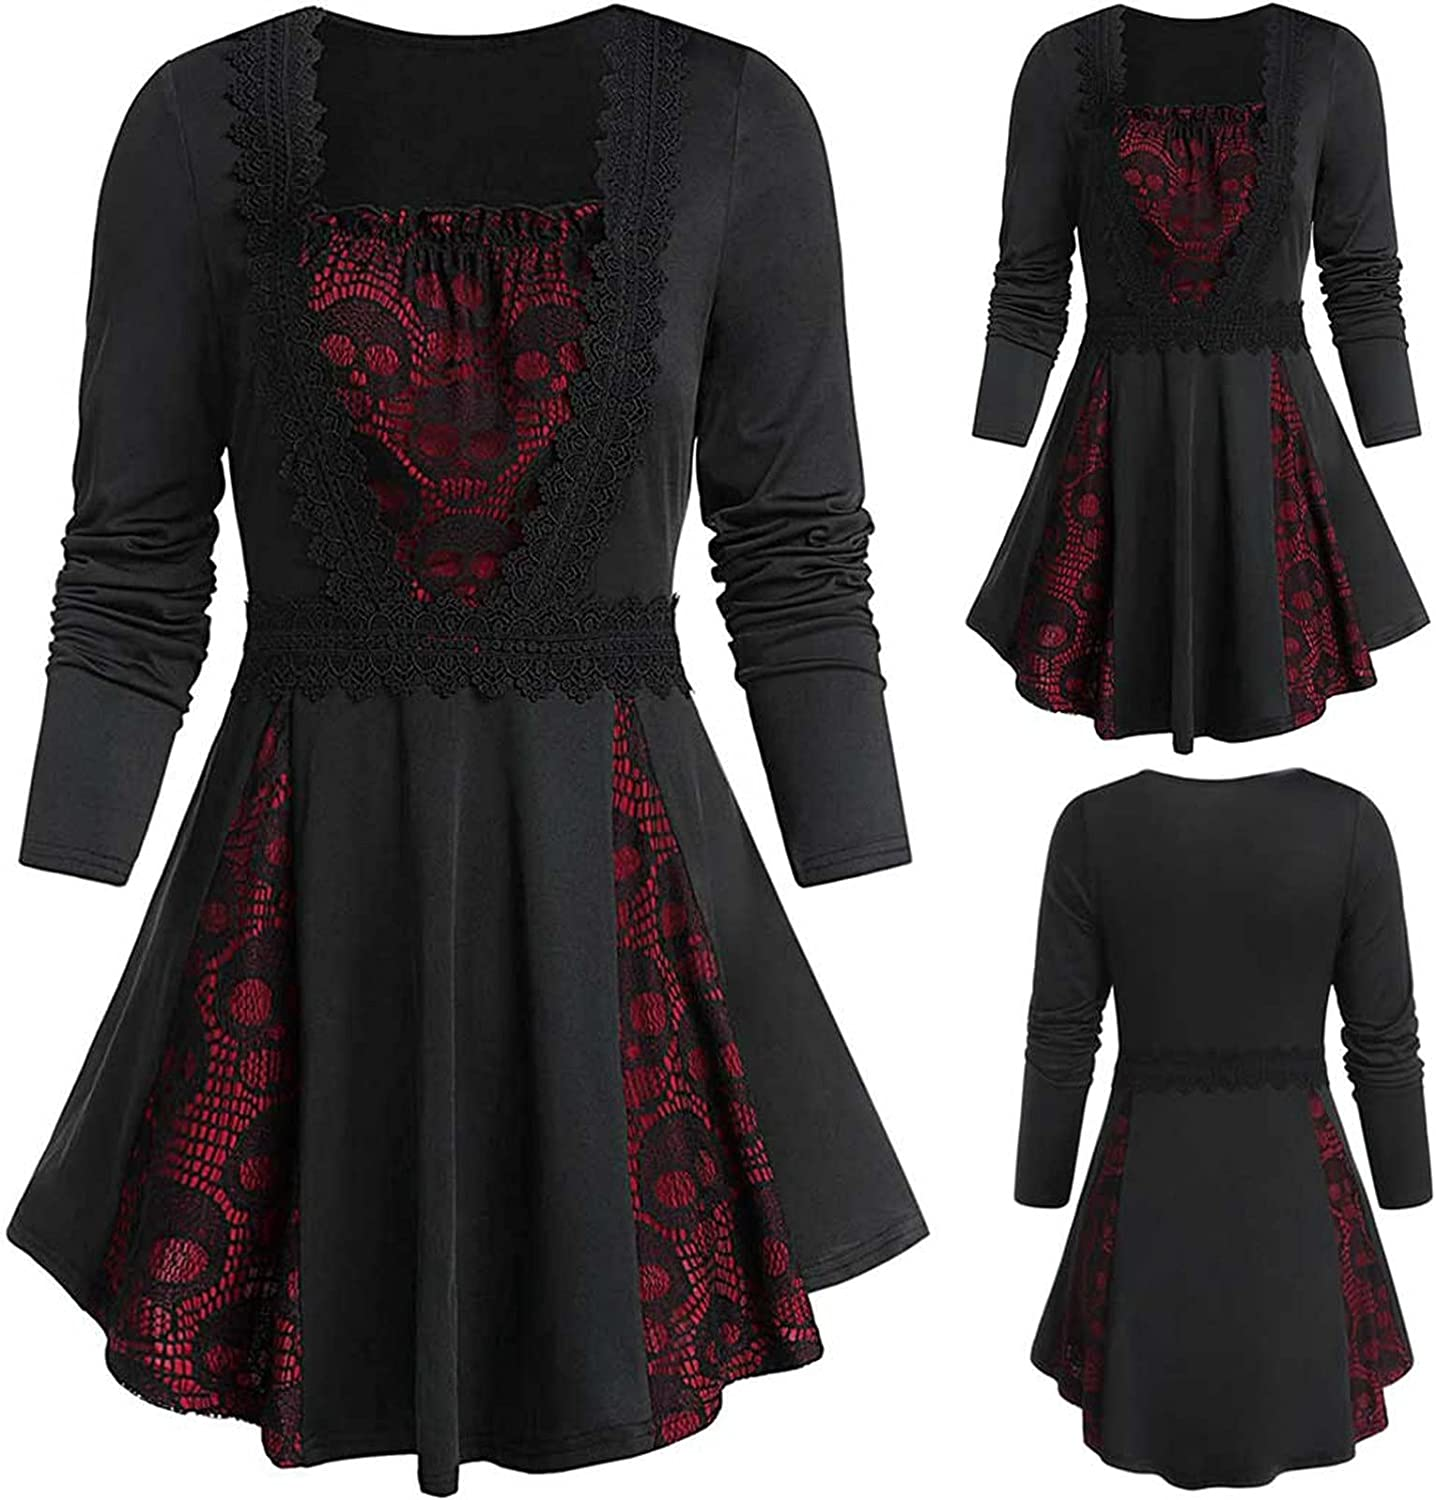 2021 Fashion Dress for Women's Casual Shirt Dress Solid Color Skull Lace Splicing Long Sleeve Gothic Skirt Dress